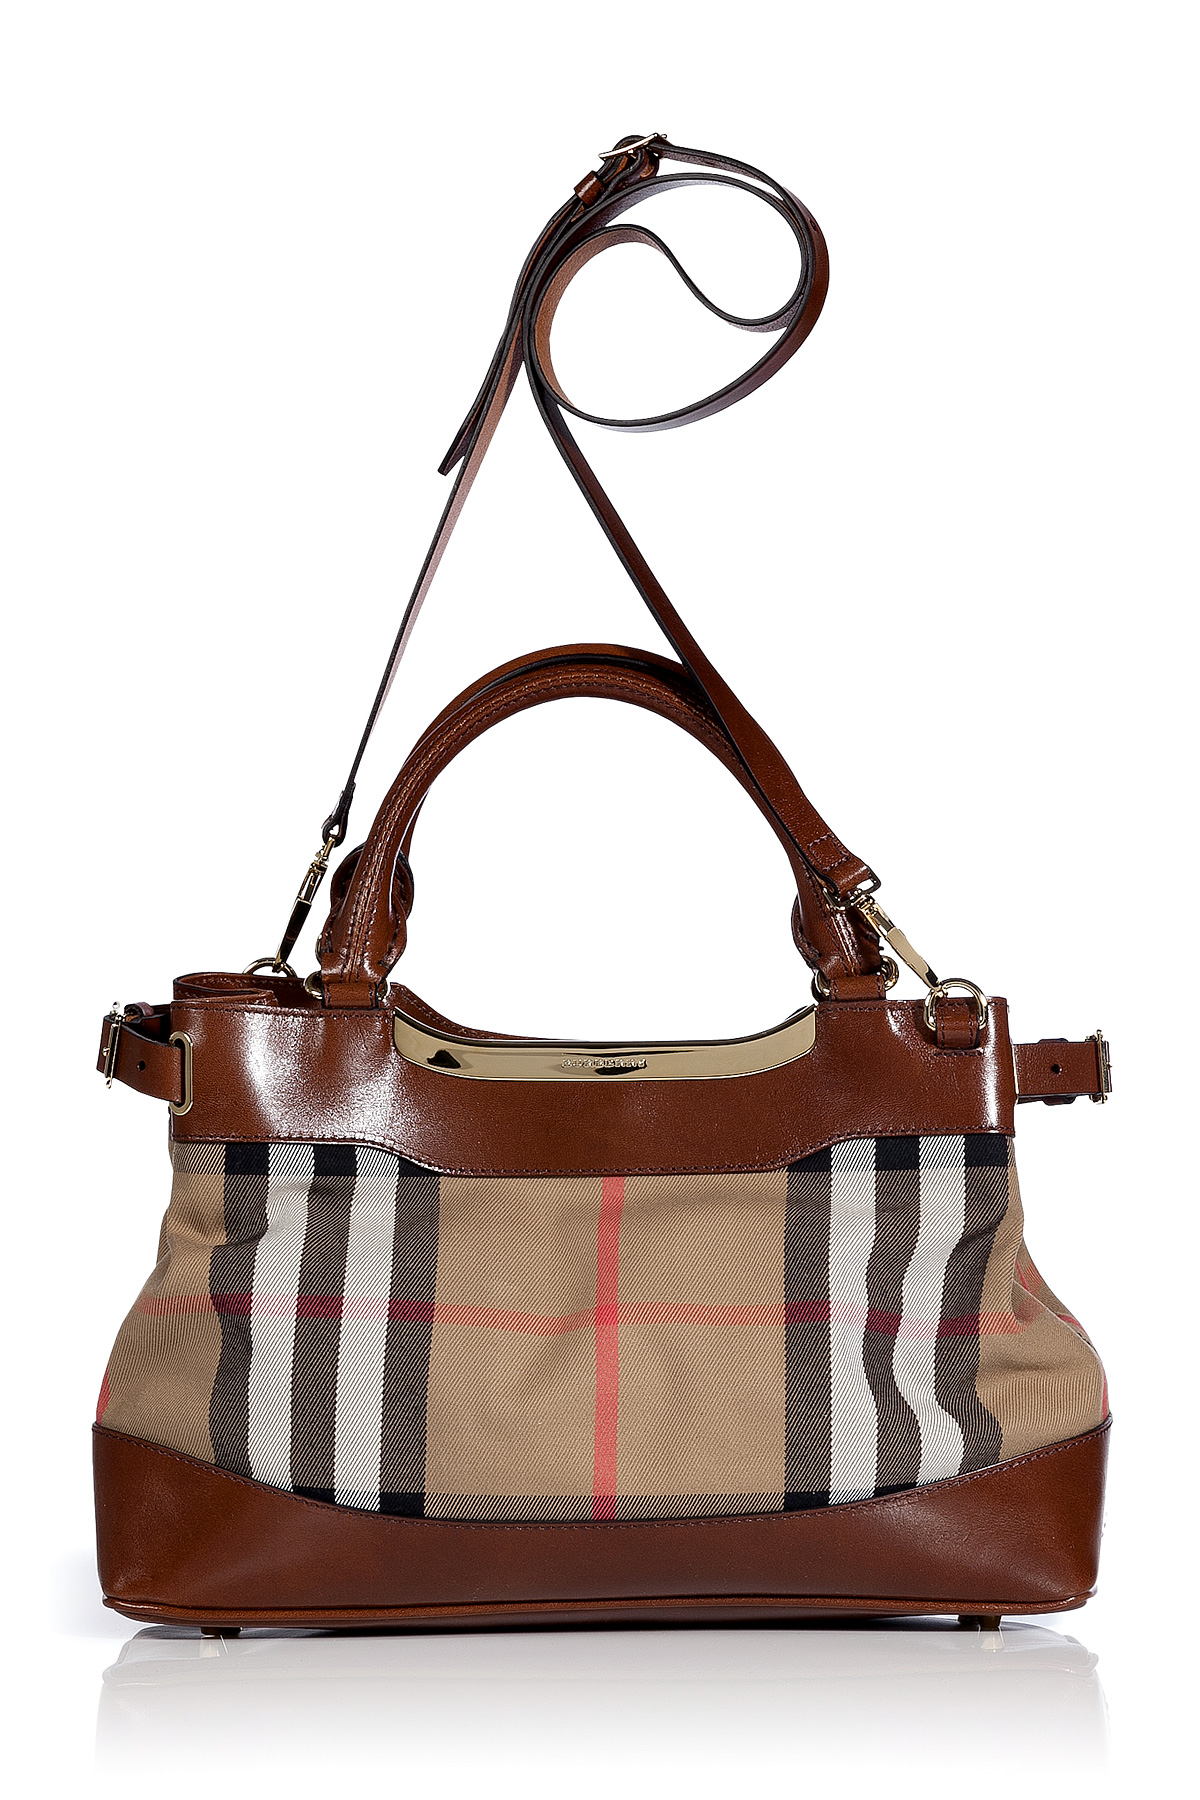 Lyst - Burberry Dark Tan Bridle House Check Small Hepburn Tote in Brown 39fe37be14